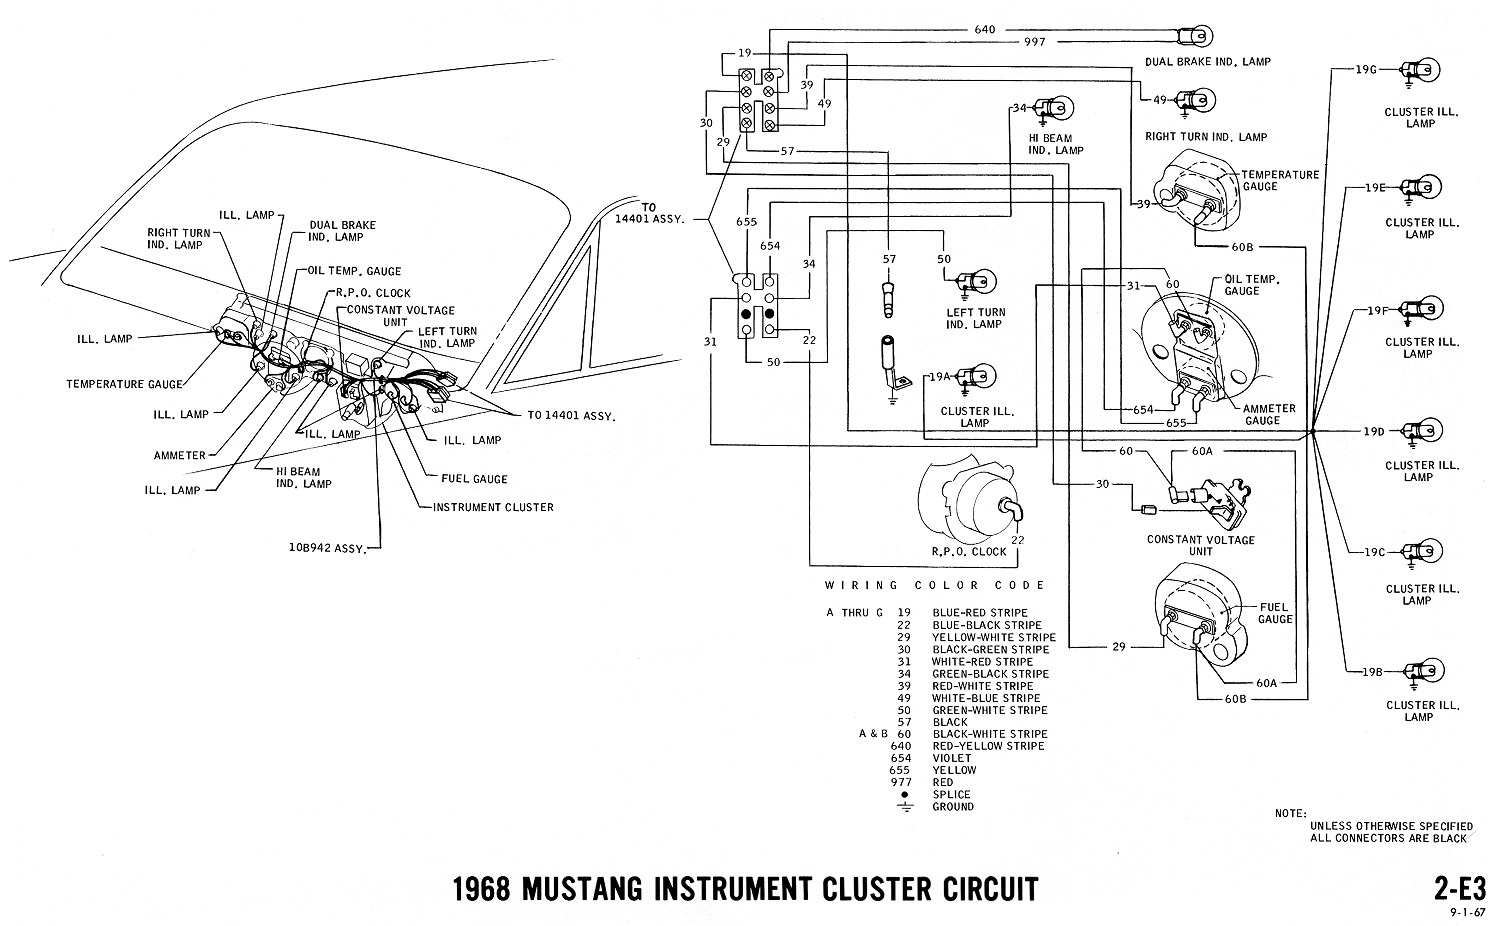 engine control module wiring diagram with 1968 Mustang Wiring Diagram Vacuum Schematics on 1968 Mustang Wiring Diagram Vacuum Schematics also Repairs willcoxcorvette also Engine as well P0710 moreover Discussion T17841 ds547485.